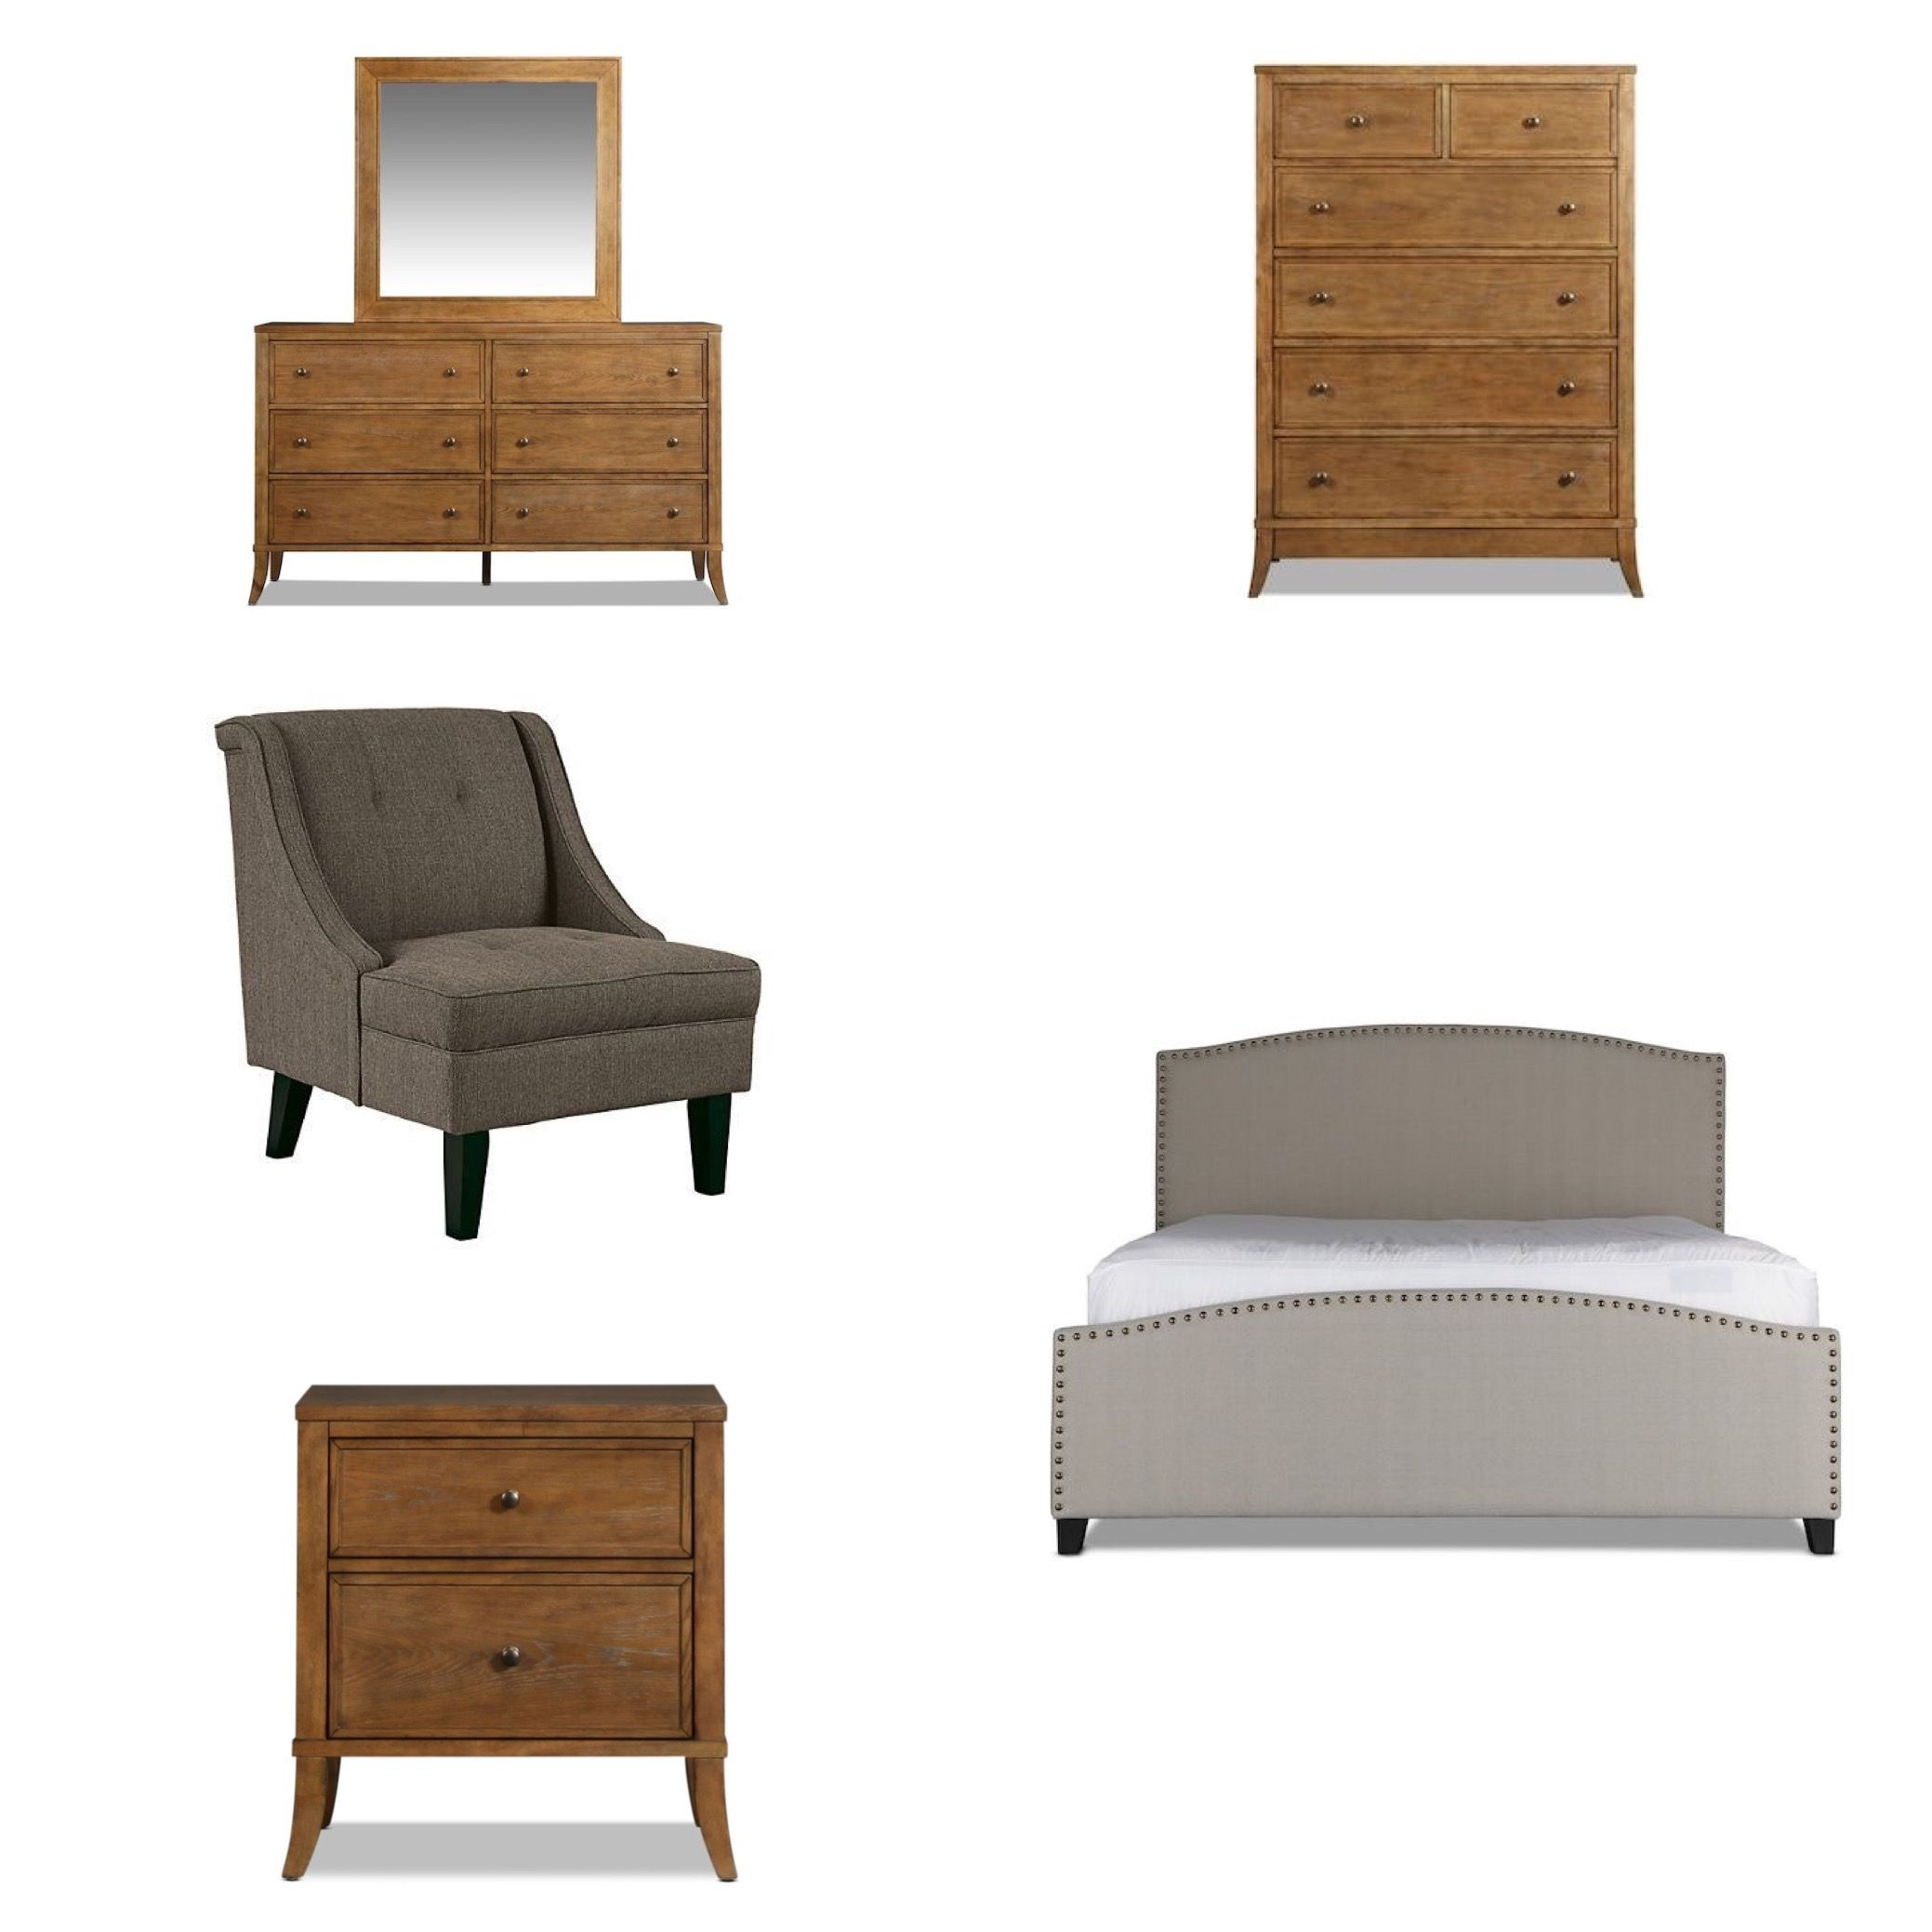 queen locator by cavallino products bed with furniture bedroom dealer design b signature storage ahfa mansion ashley headboard sets levin item poster footboard